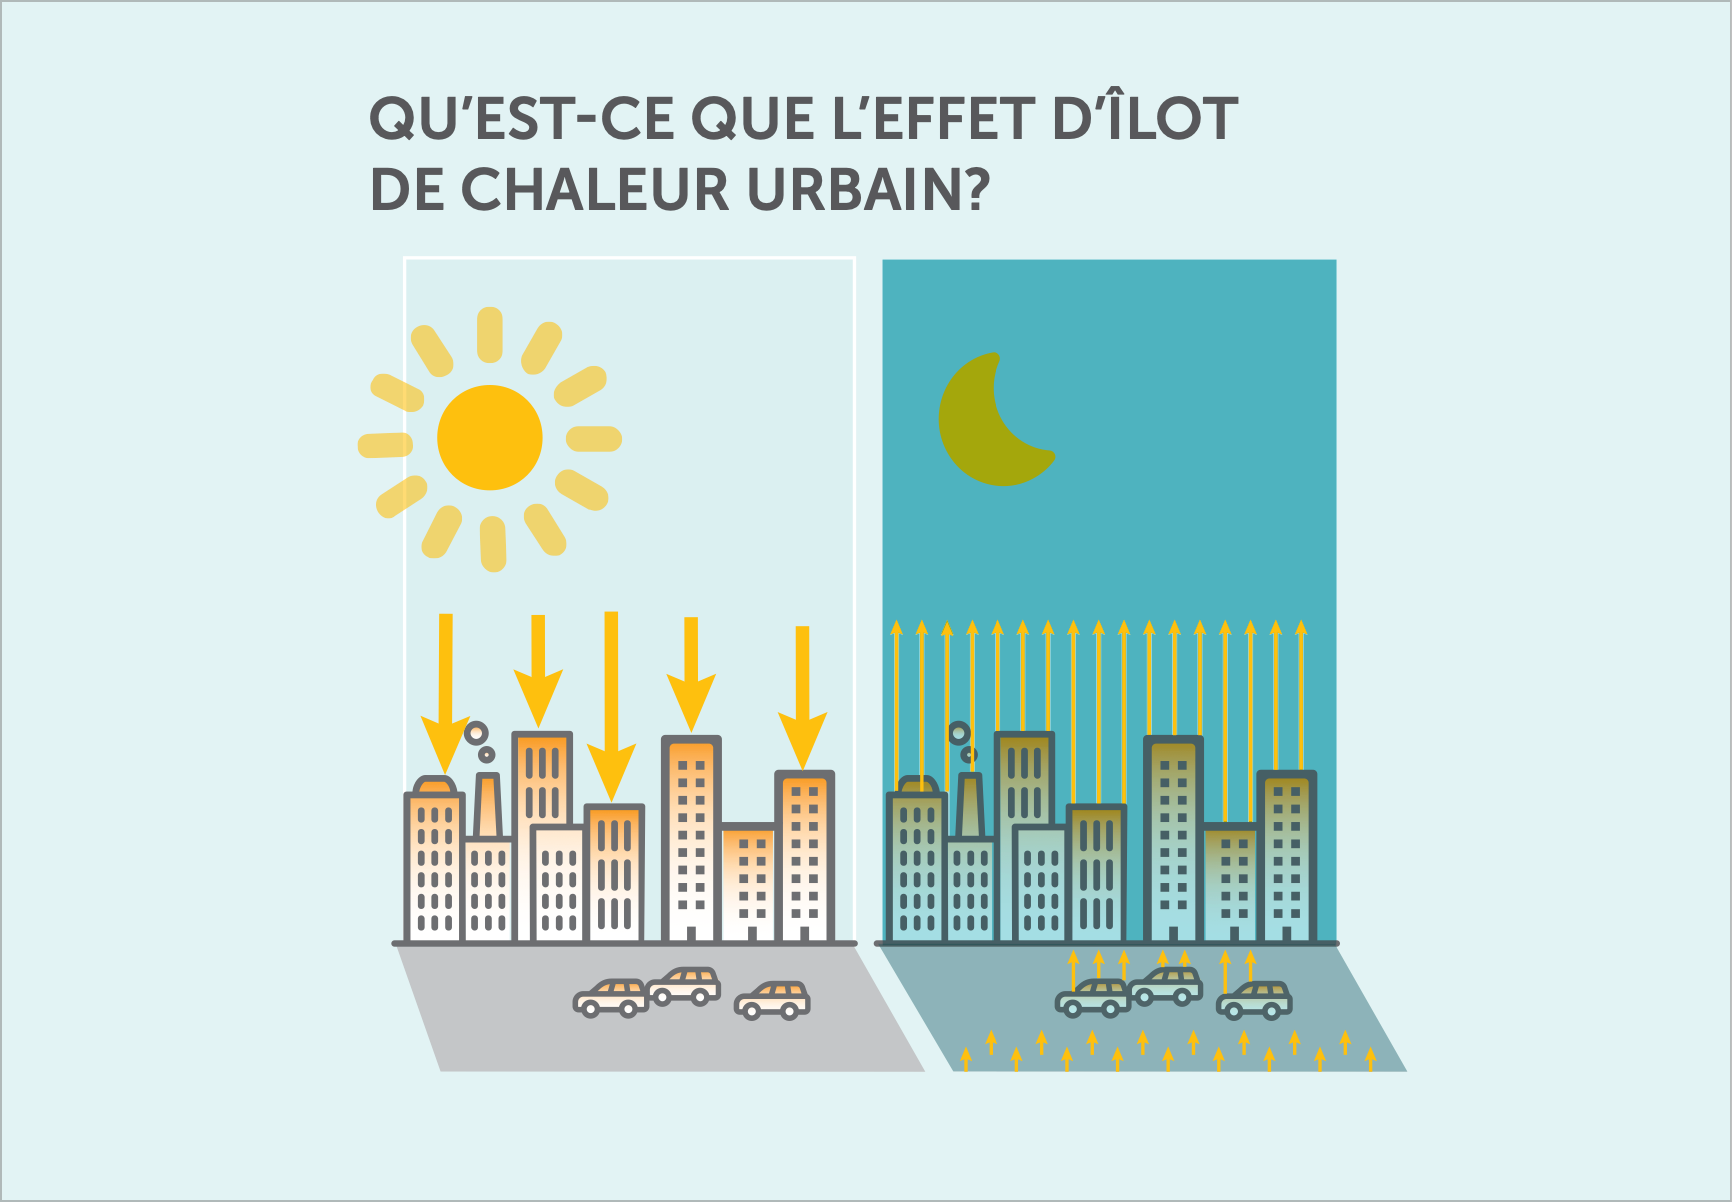 Infographic desmonstrating how heat syncs affect temperature in an urban setting